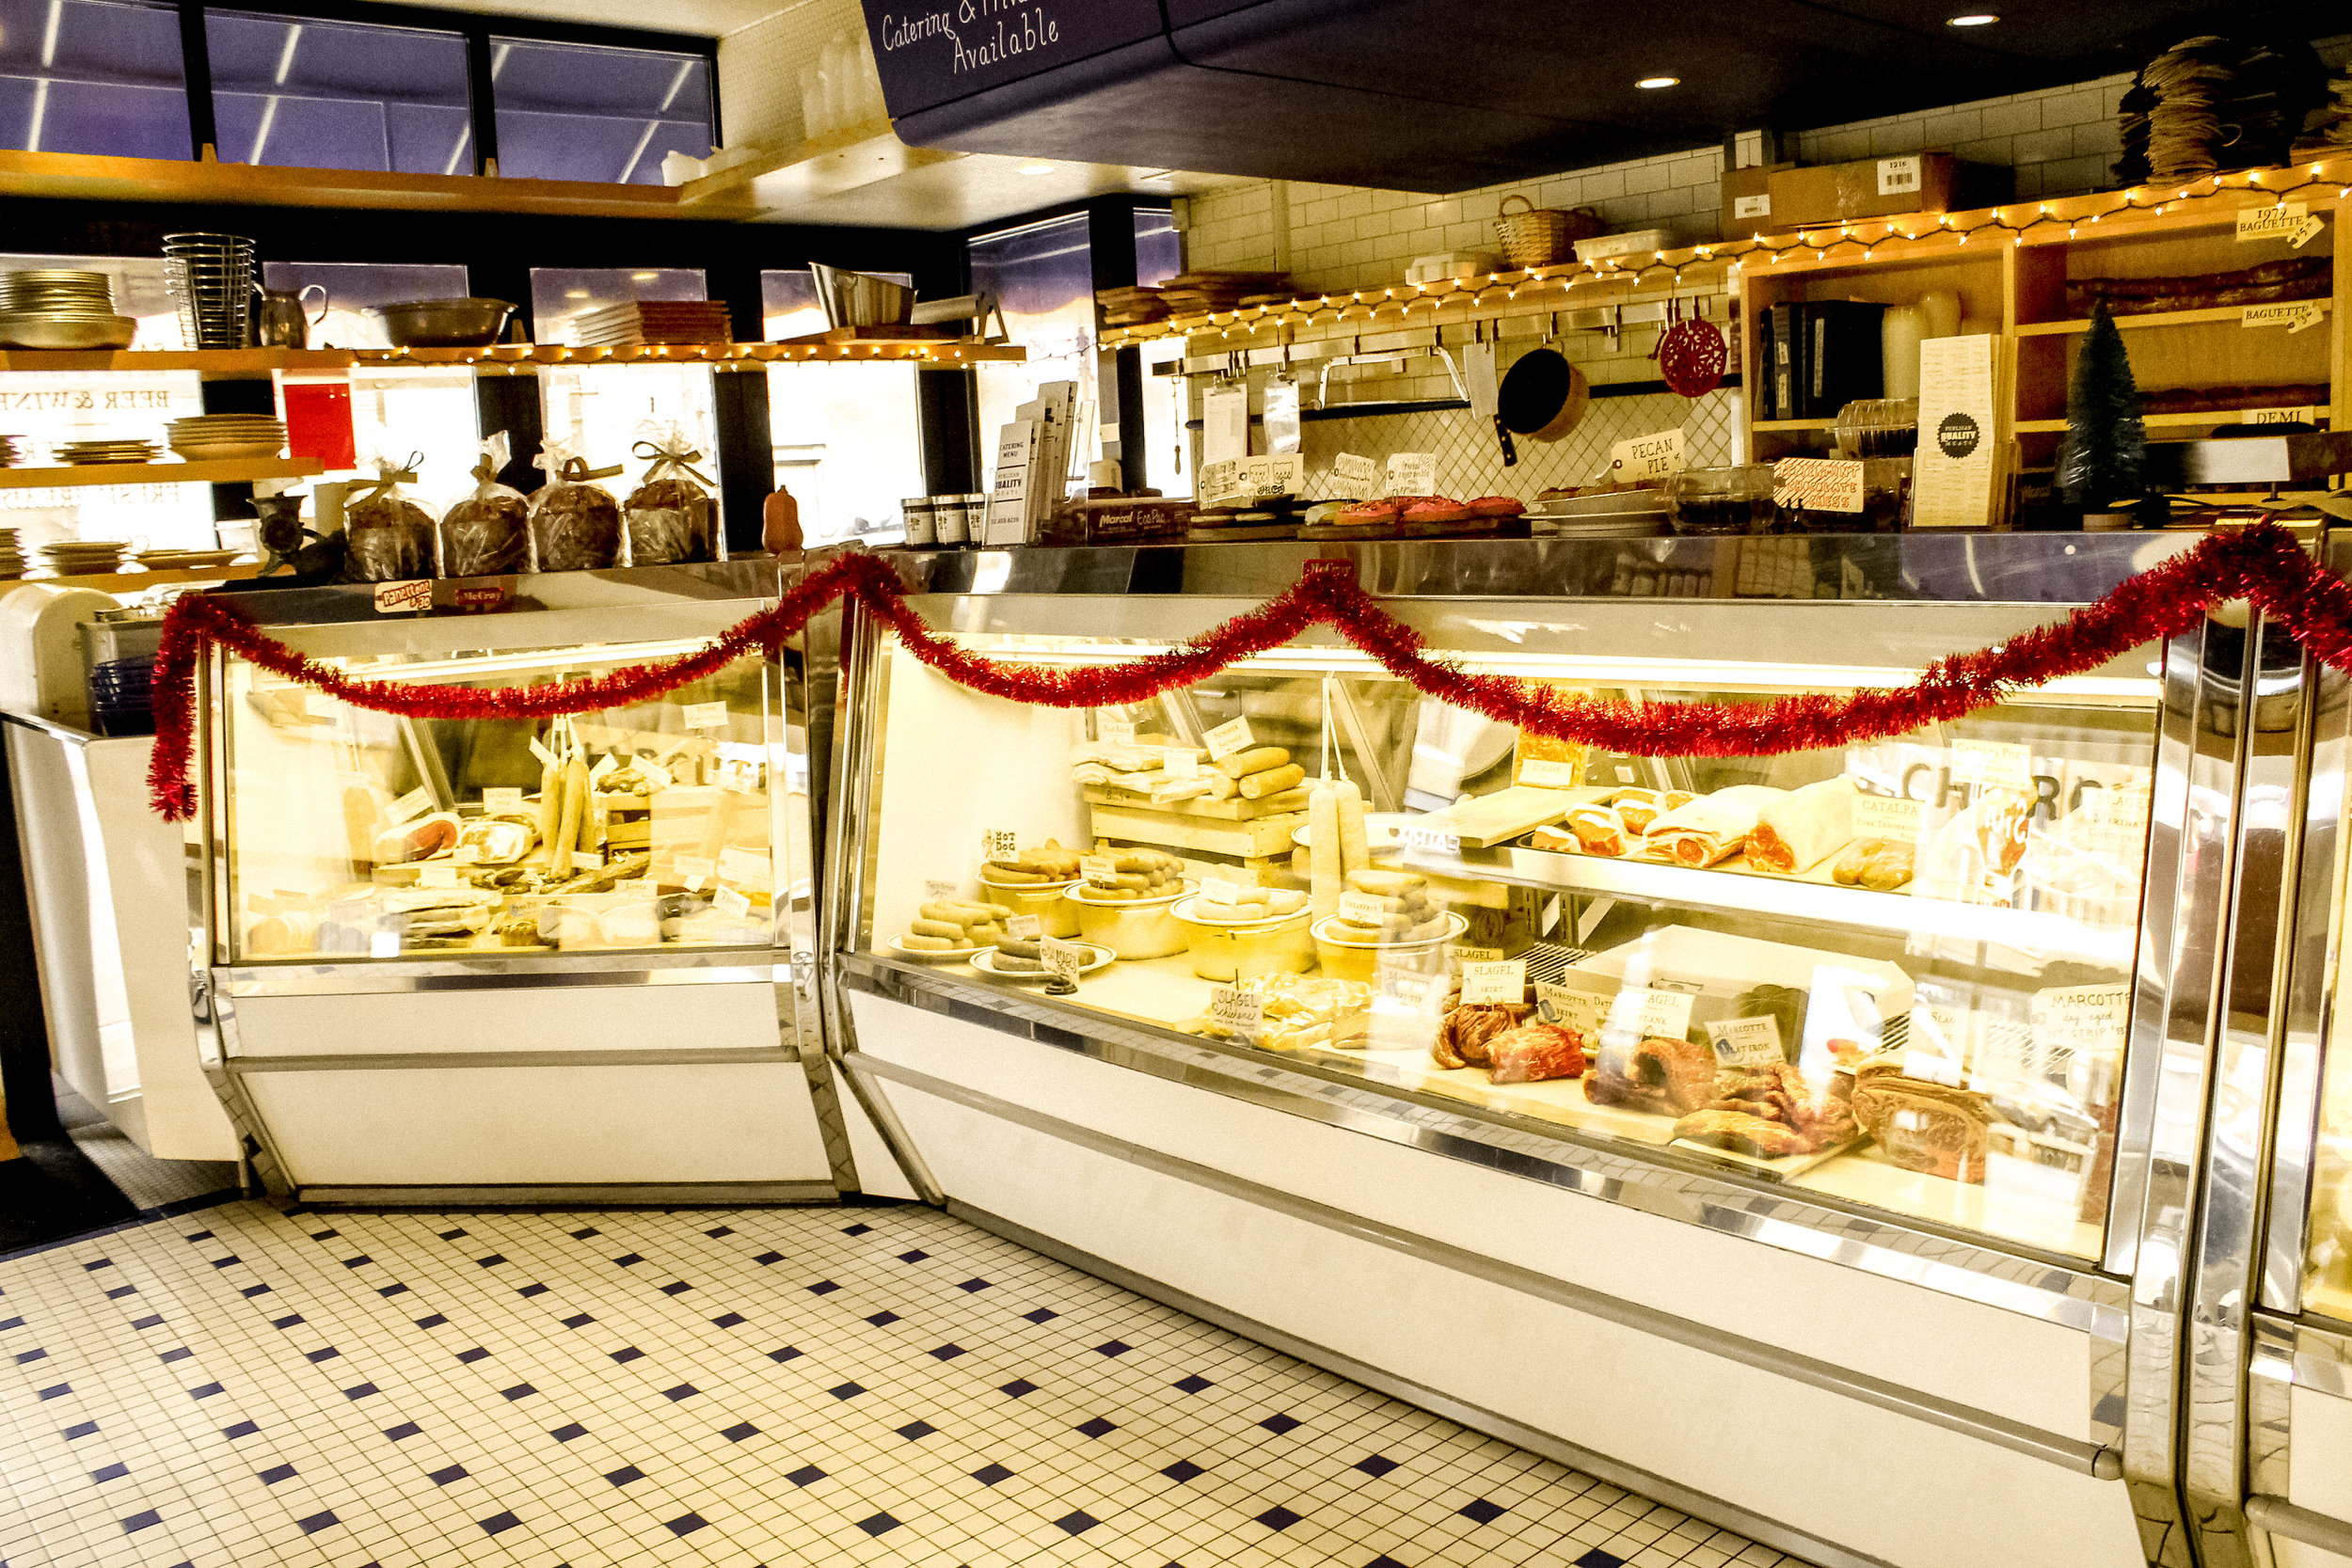 Publican Quality Meats Display Cases